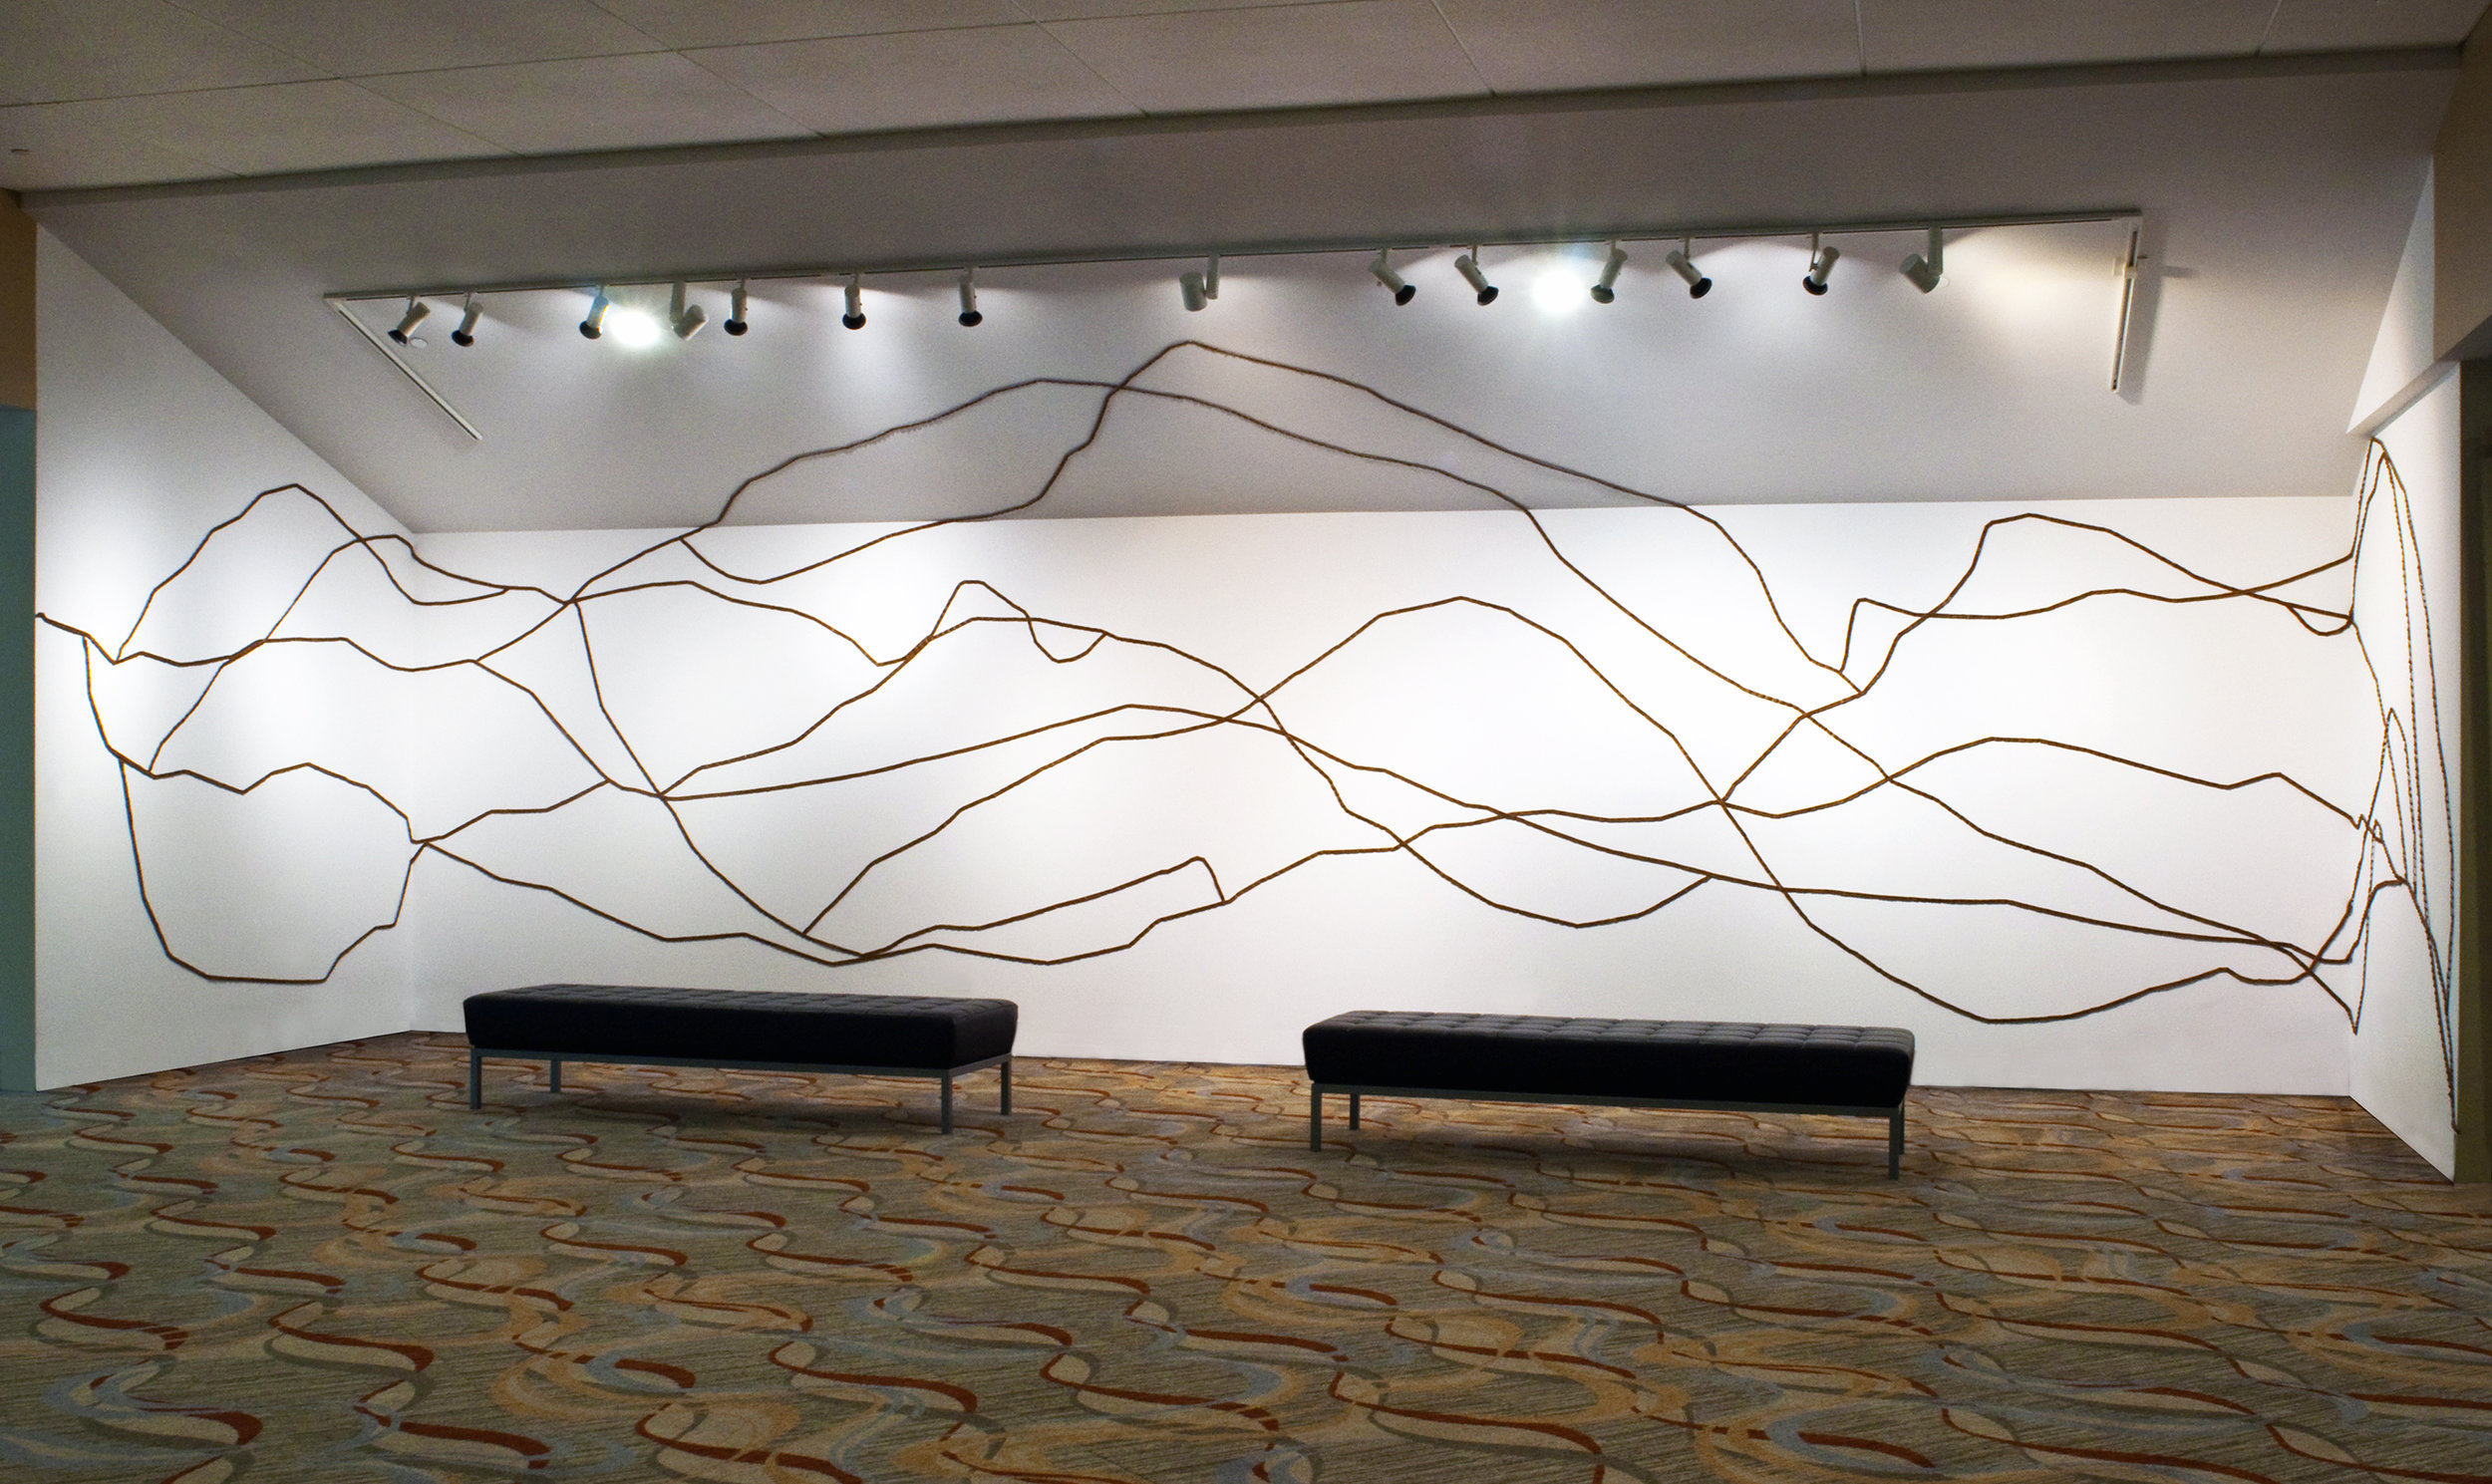 approximately 9 x 25 feet as installed at Lincoln Center in Fort Collins, Colorado